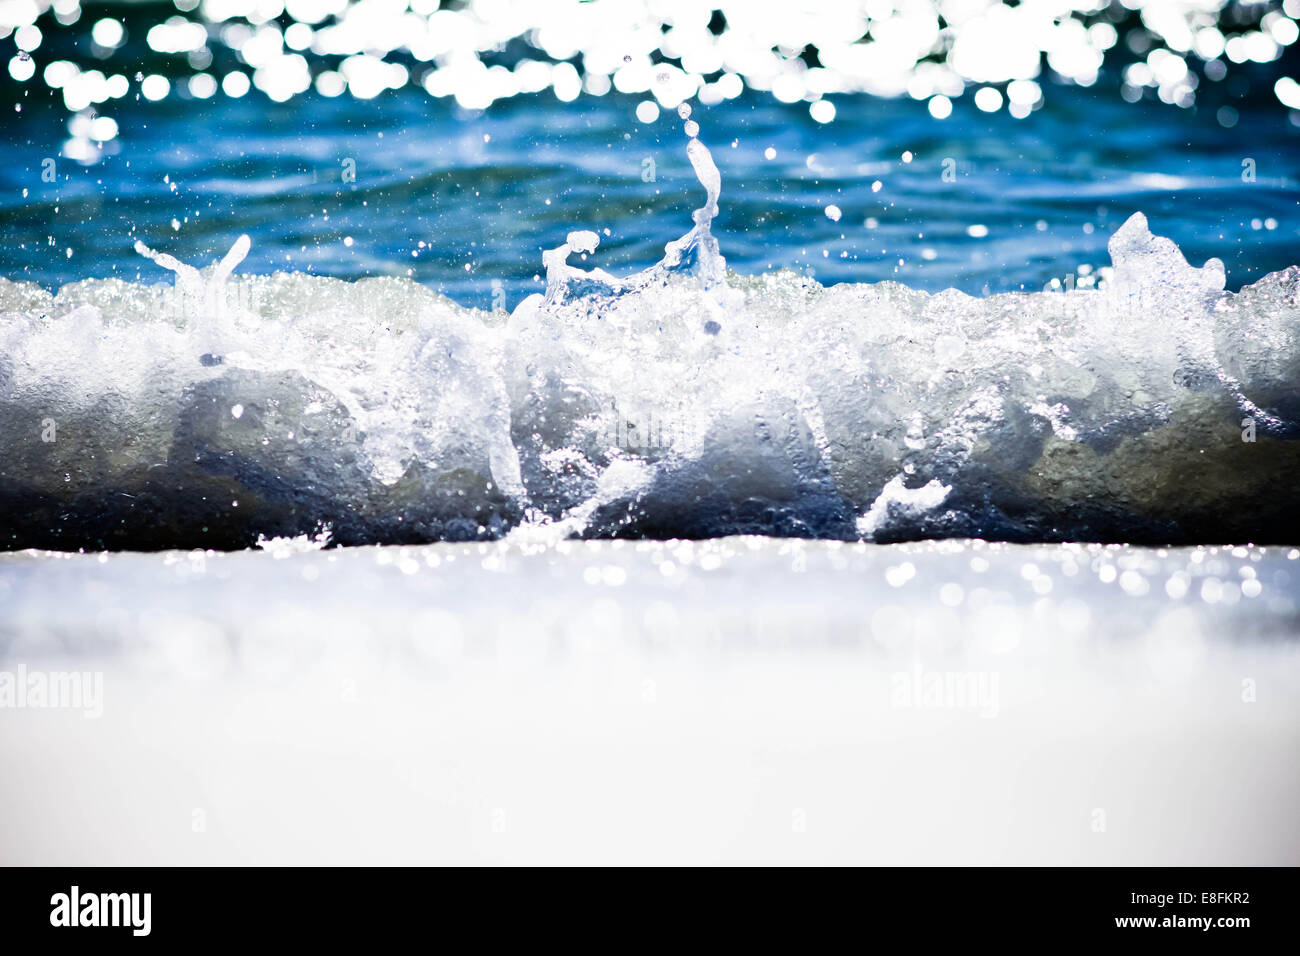 Destin, Florida, United States of America Splash - Stock Image